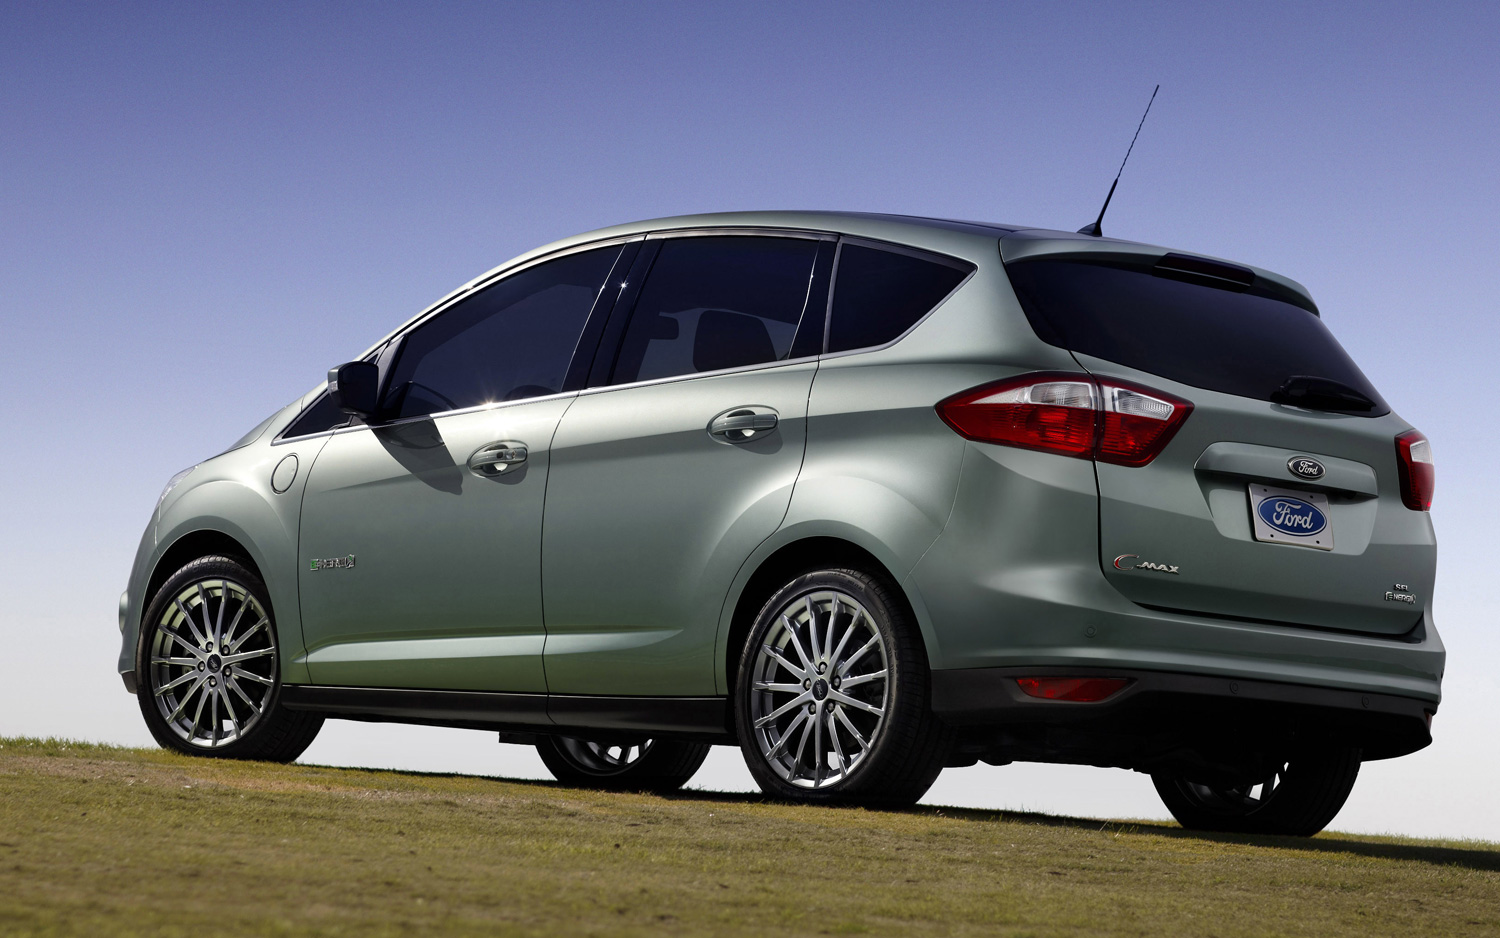 2013-Ford-C-Max-Energi-side-view-in-field